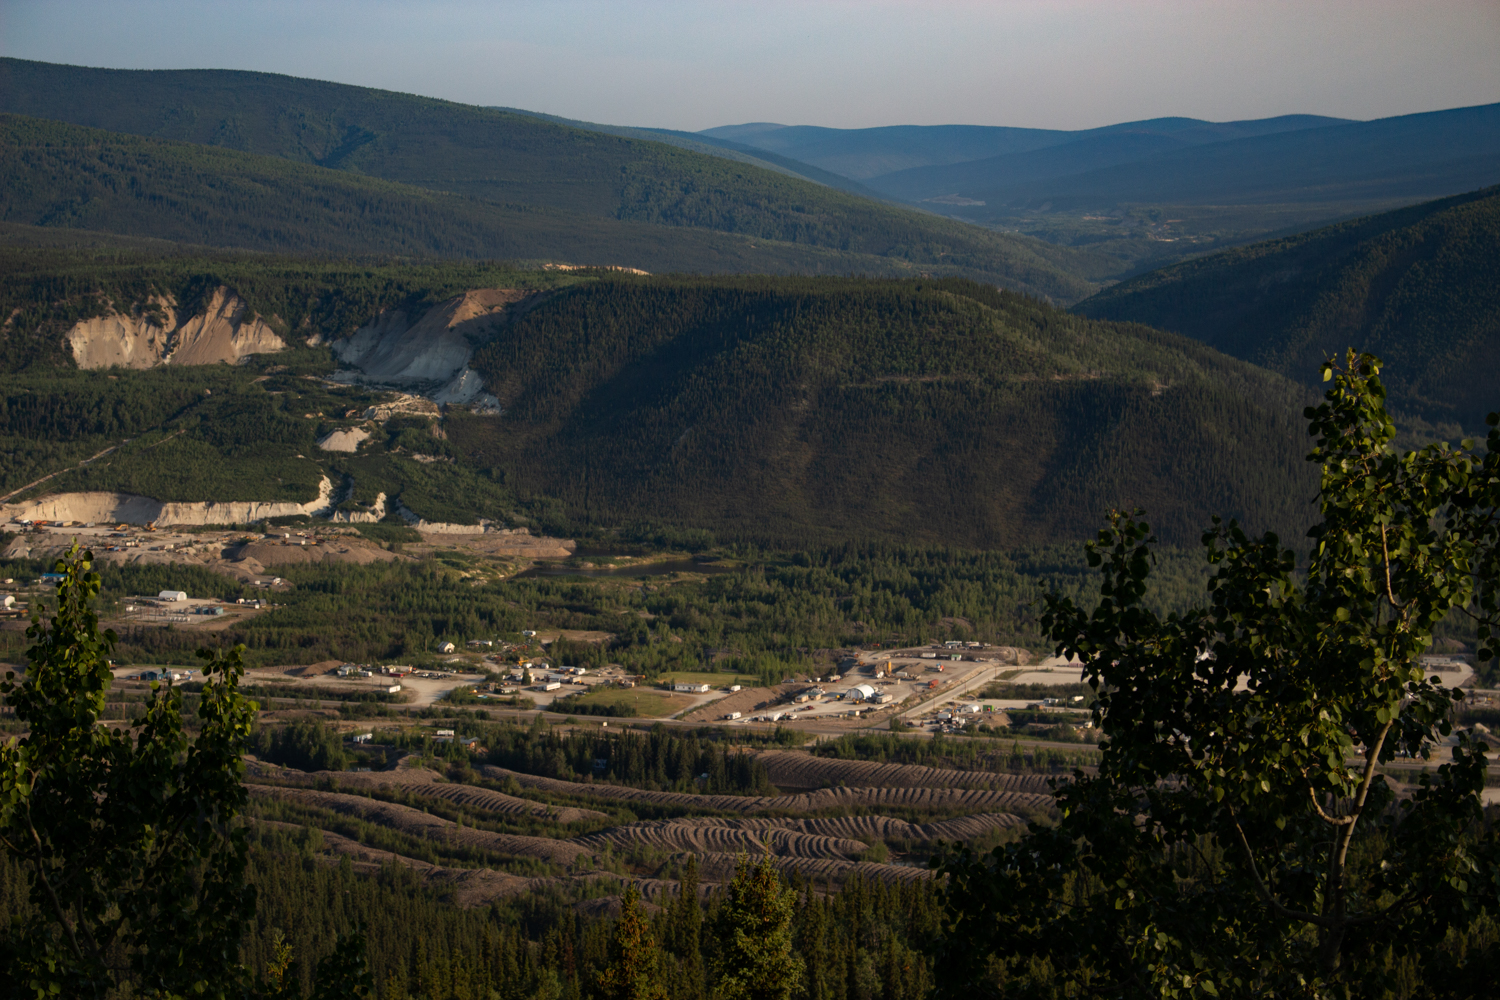 A view from the top of Dawson City's Midnight Dome overlooking the historic gold rush town. Photo by Caroline Mercer